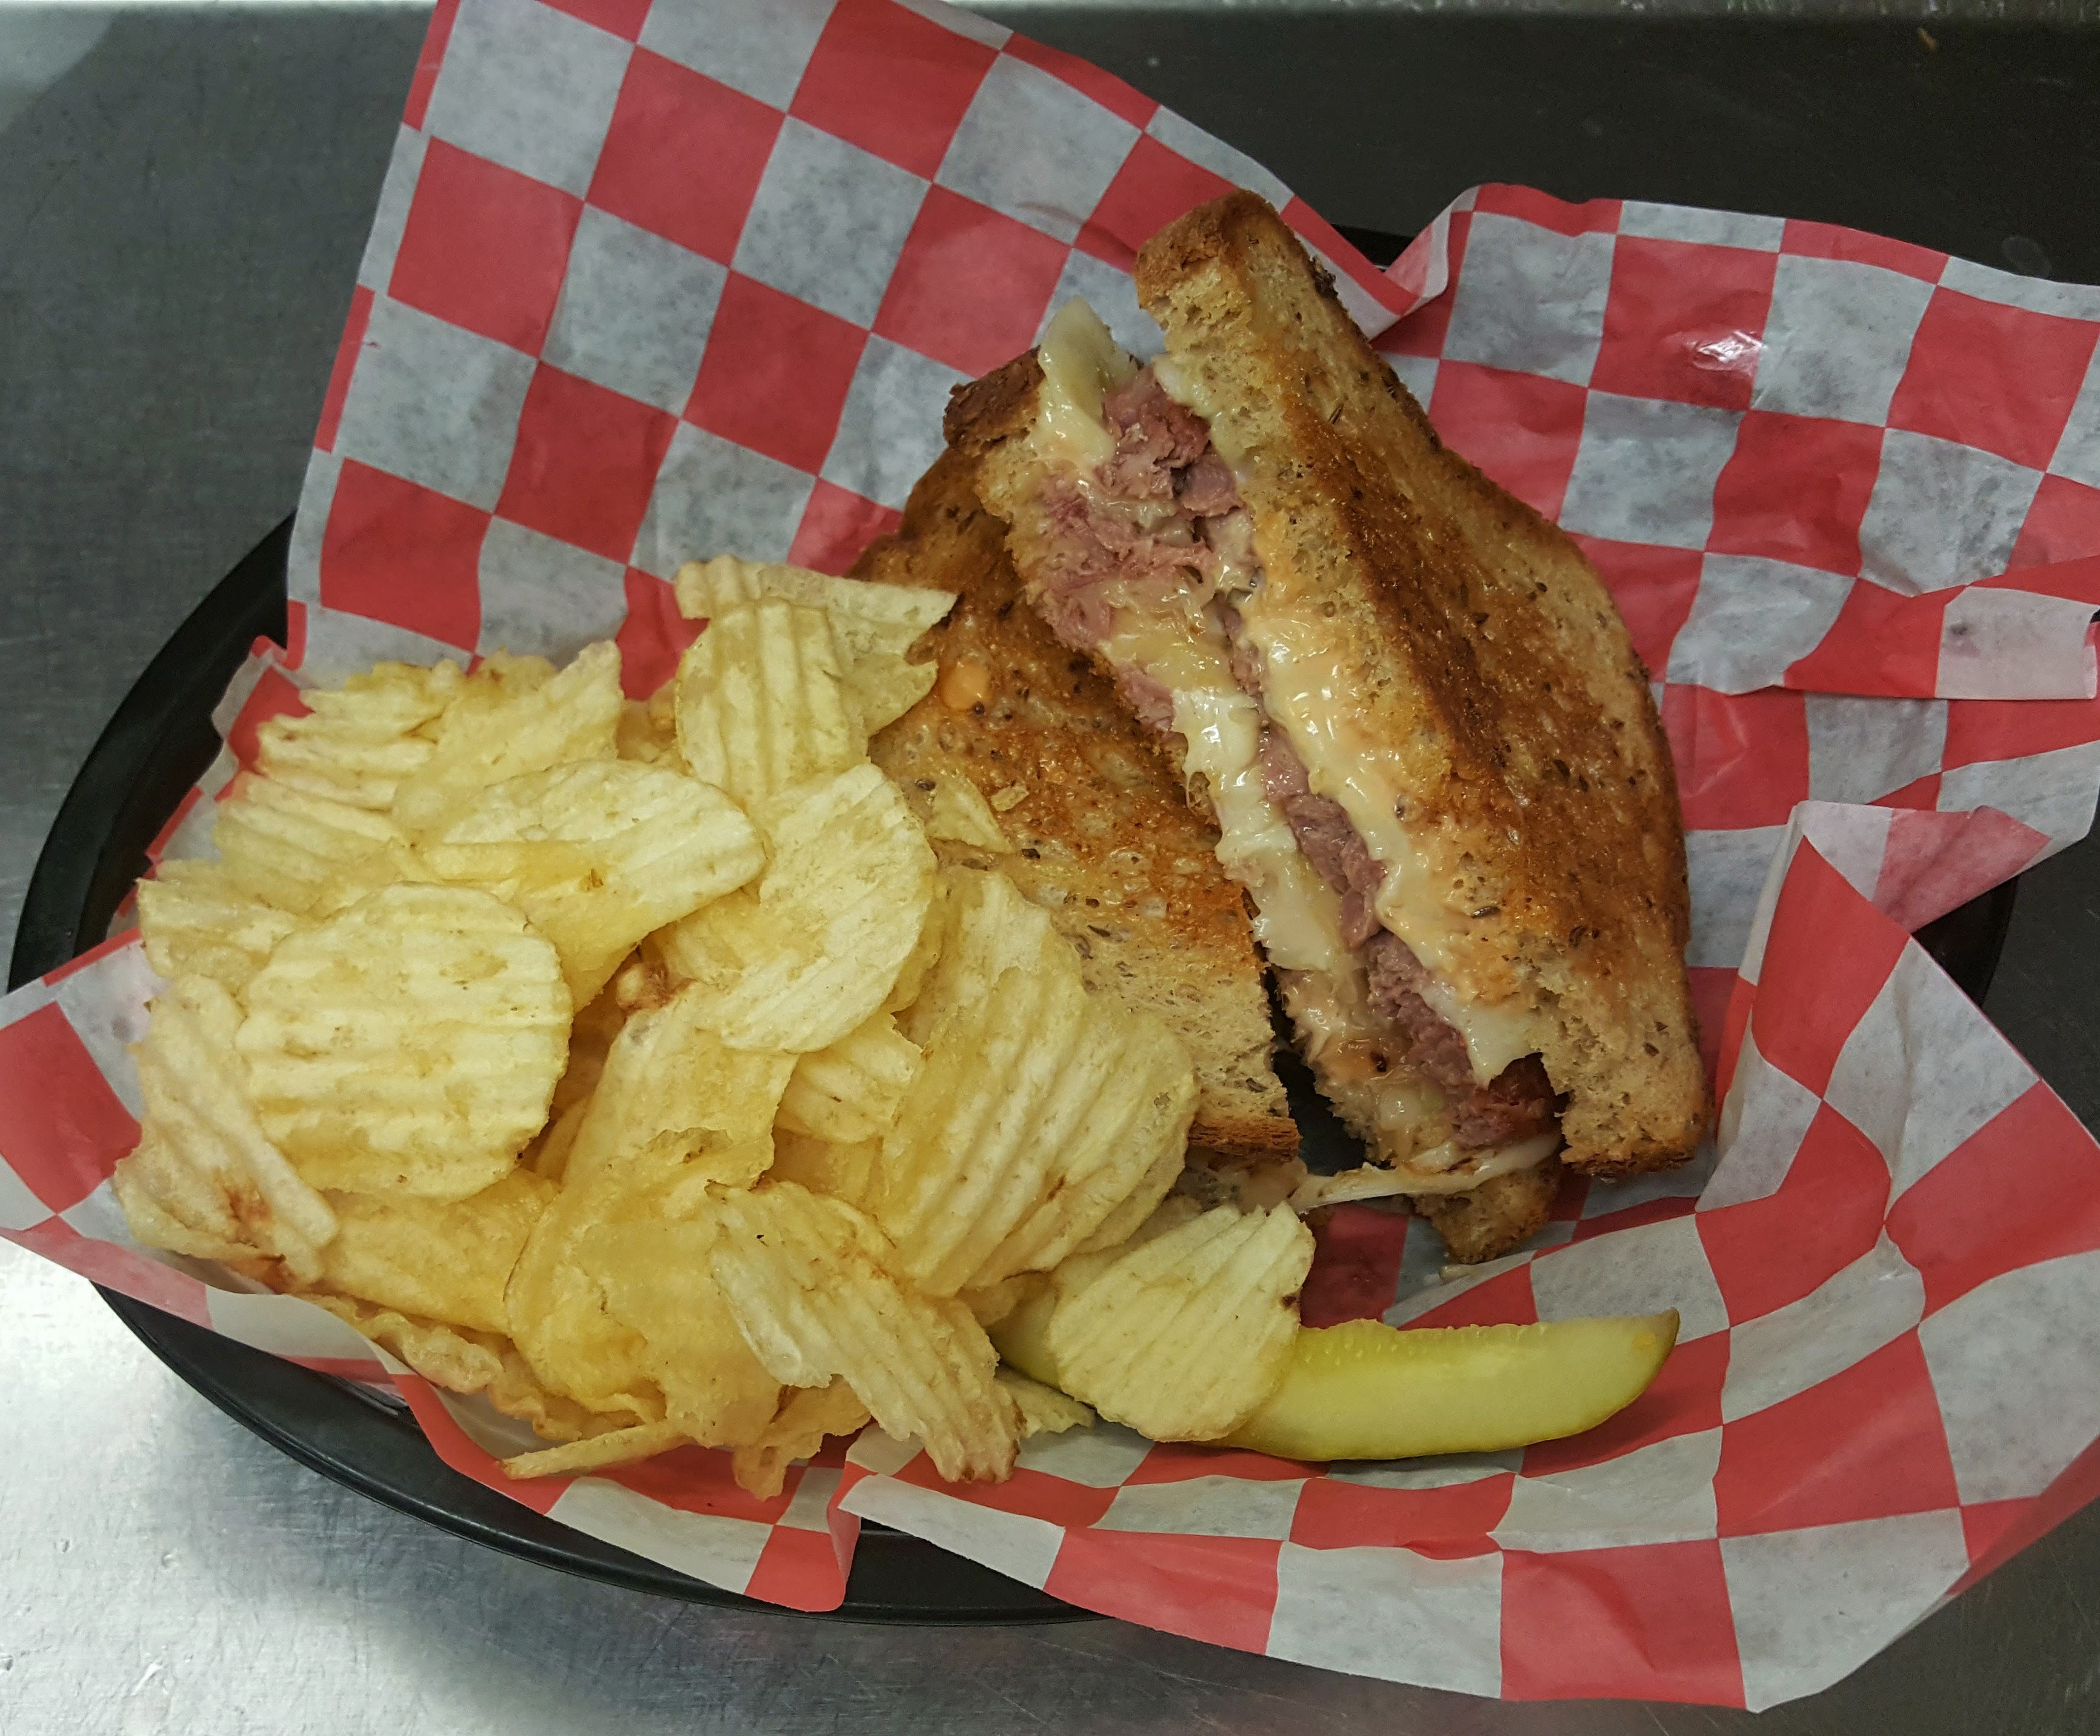 Tasty Reuben Melt Sandwich and Chips at the Conestoga Wagon.